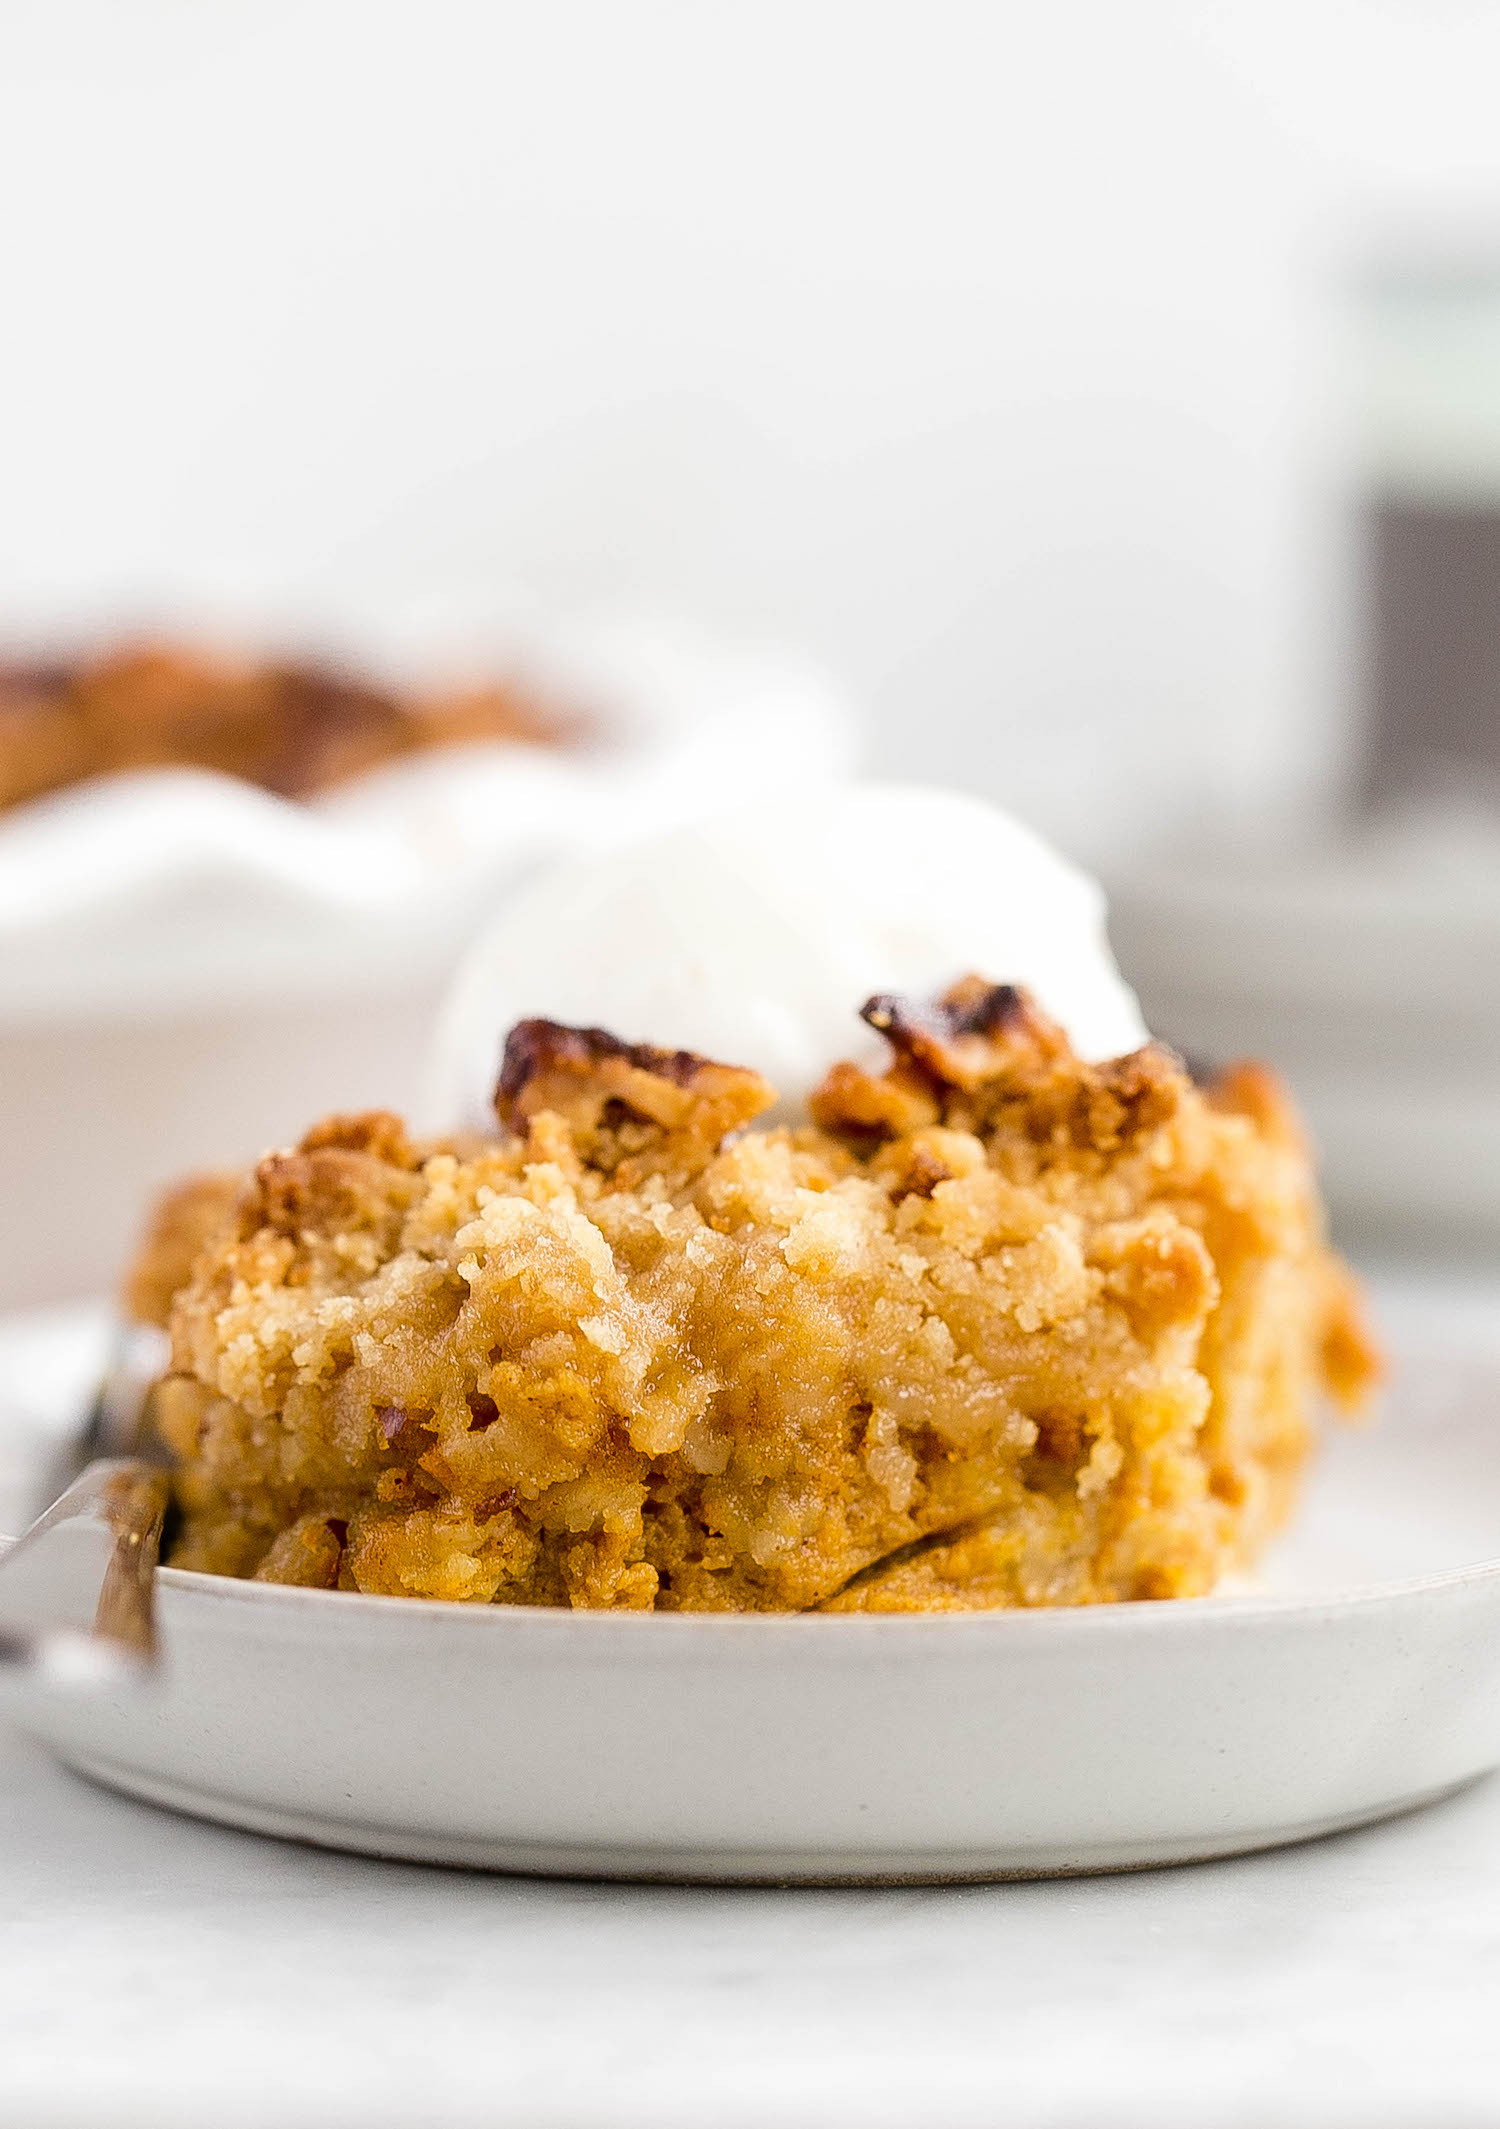 Pumpkin Pie Crumble: rich, creamy, perfectly spiced pumpkin filling topped with a crunchy, nutty, brown sugar crumble. Perfect for Thanksgiving!   TrufflesandTrends.com